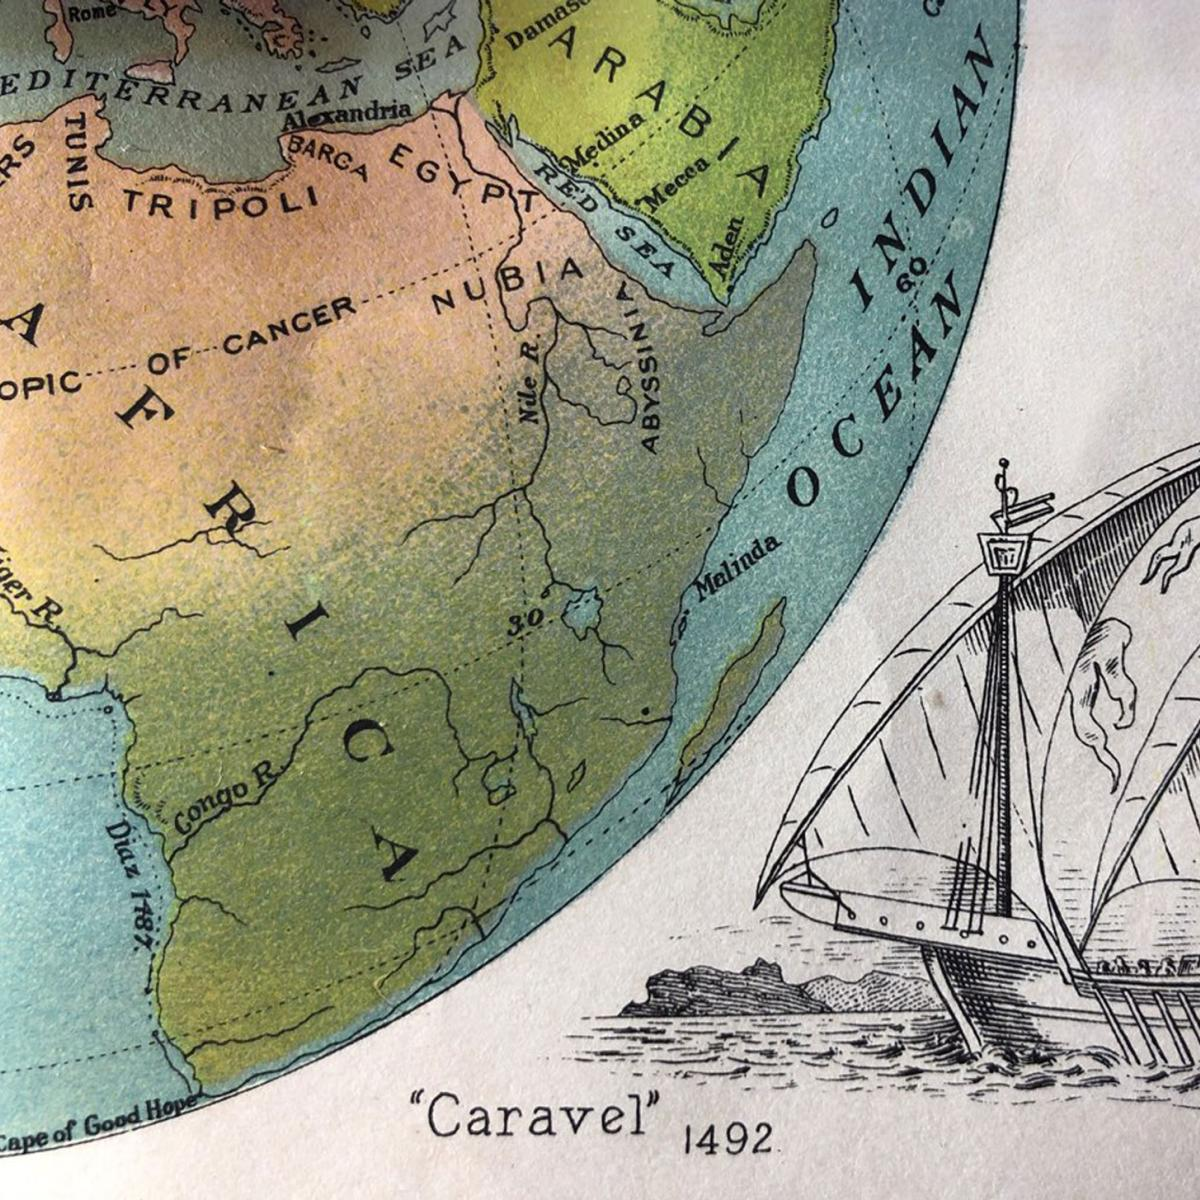 Colonialism Doesn't Explain the Developing World's Problems